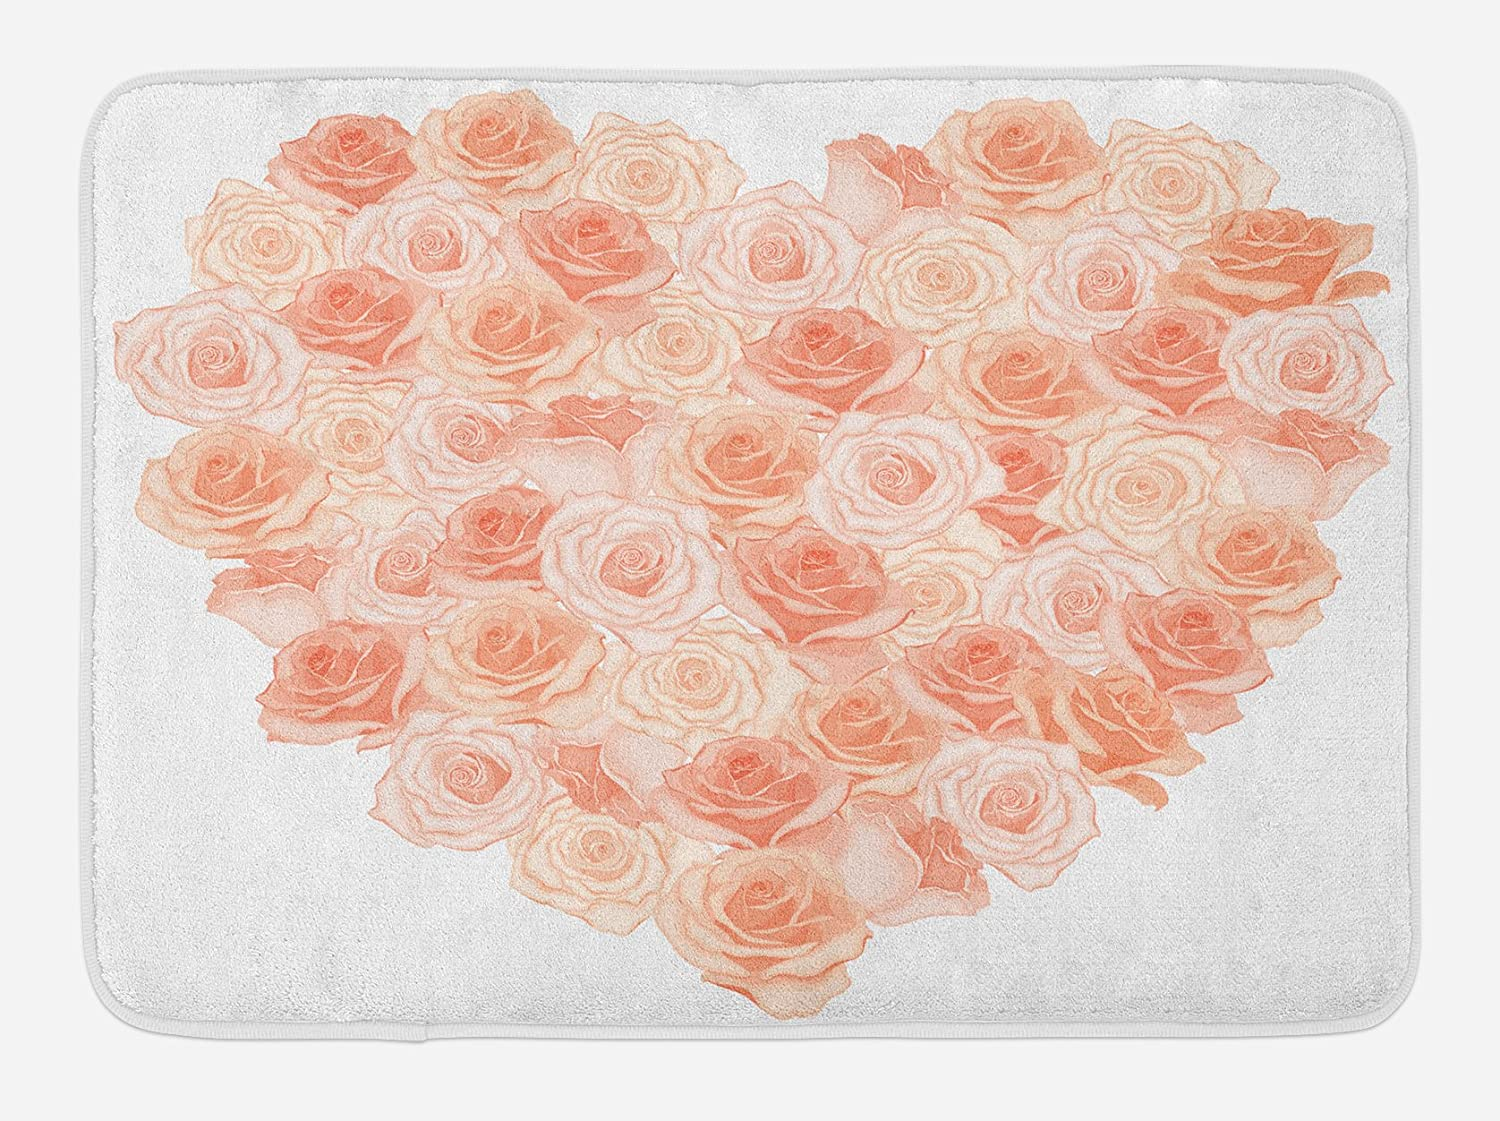 Ambesonne Peach Bath Mat, Valentines Day Inspired Heart Shaped Blooming Roses Bouquet with Romantic Design, Plush Bathroom Decor Mat with Non Slip Backing, 29.5 X 17.5, Salmon Peach